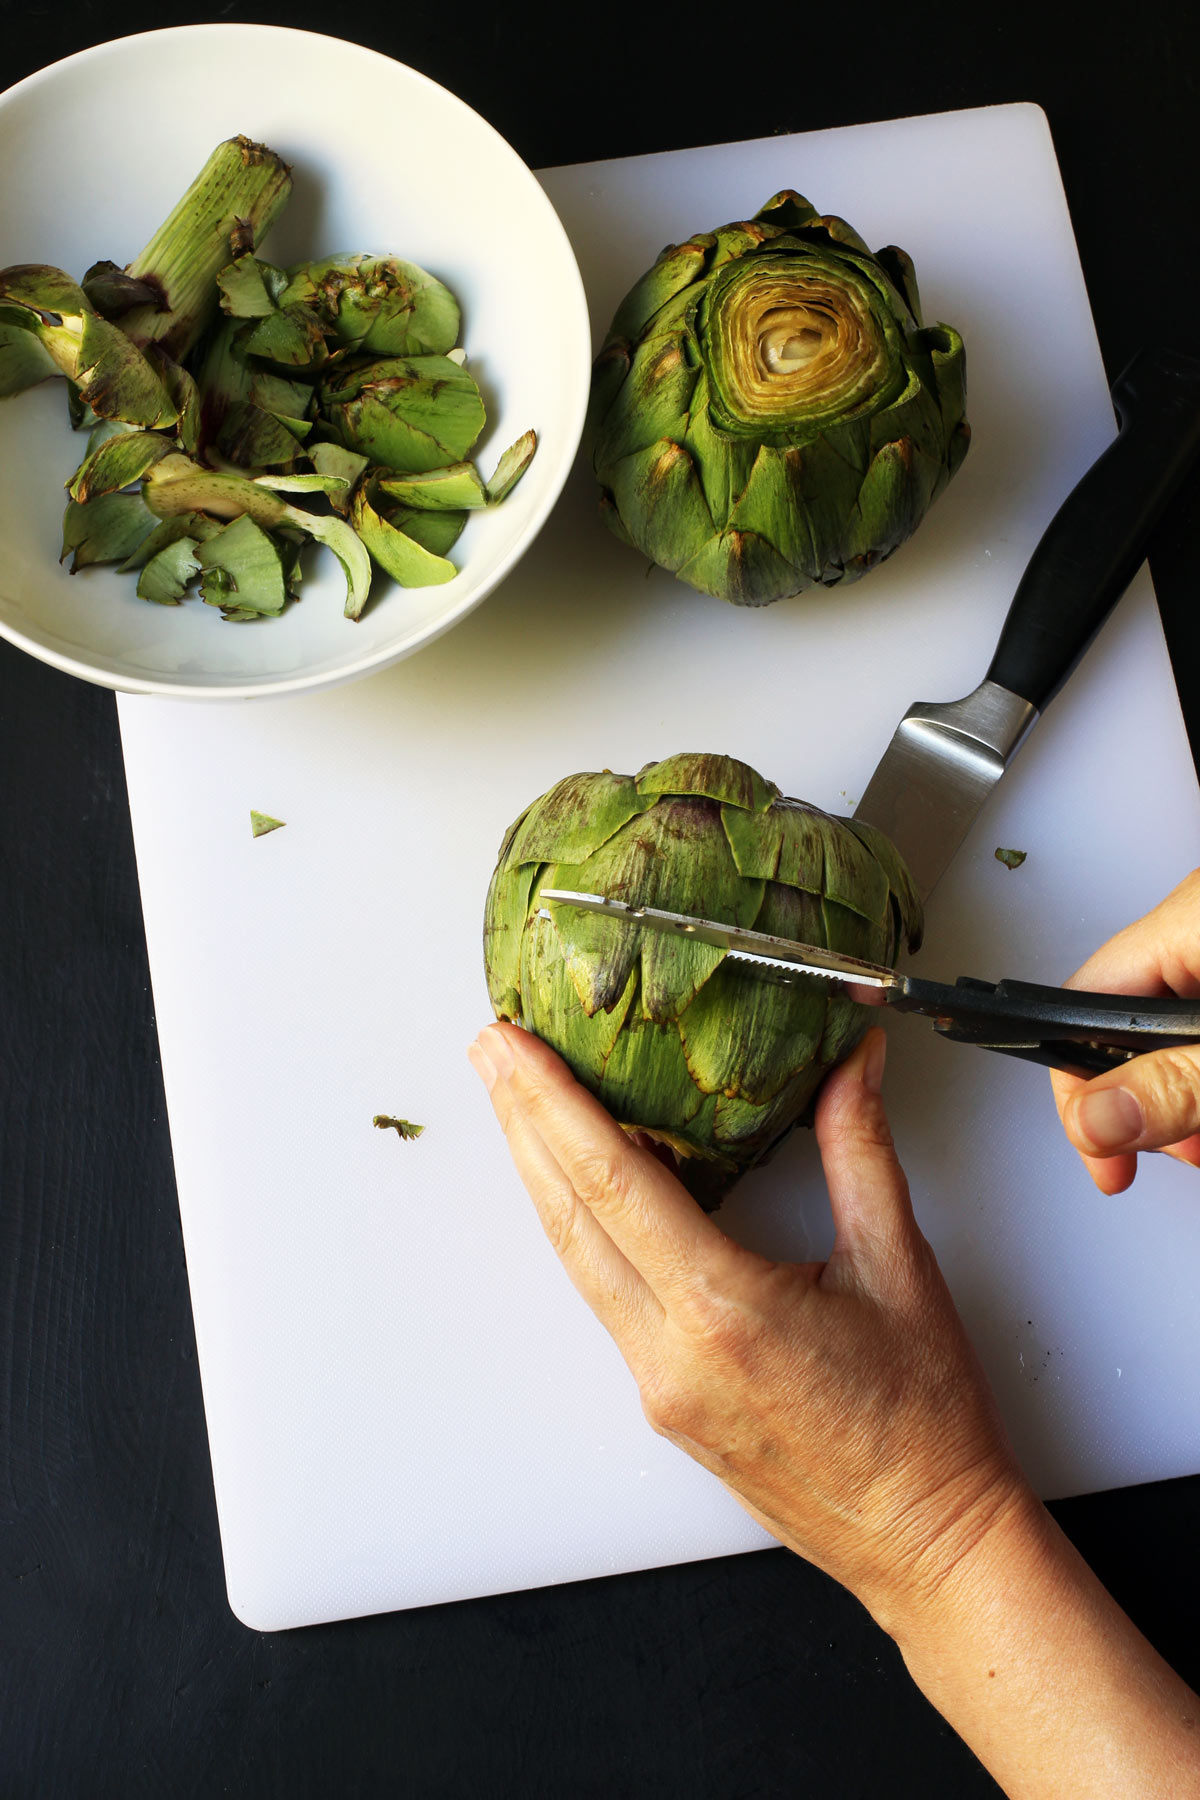 trimming artichoke leaves with scissors